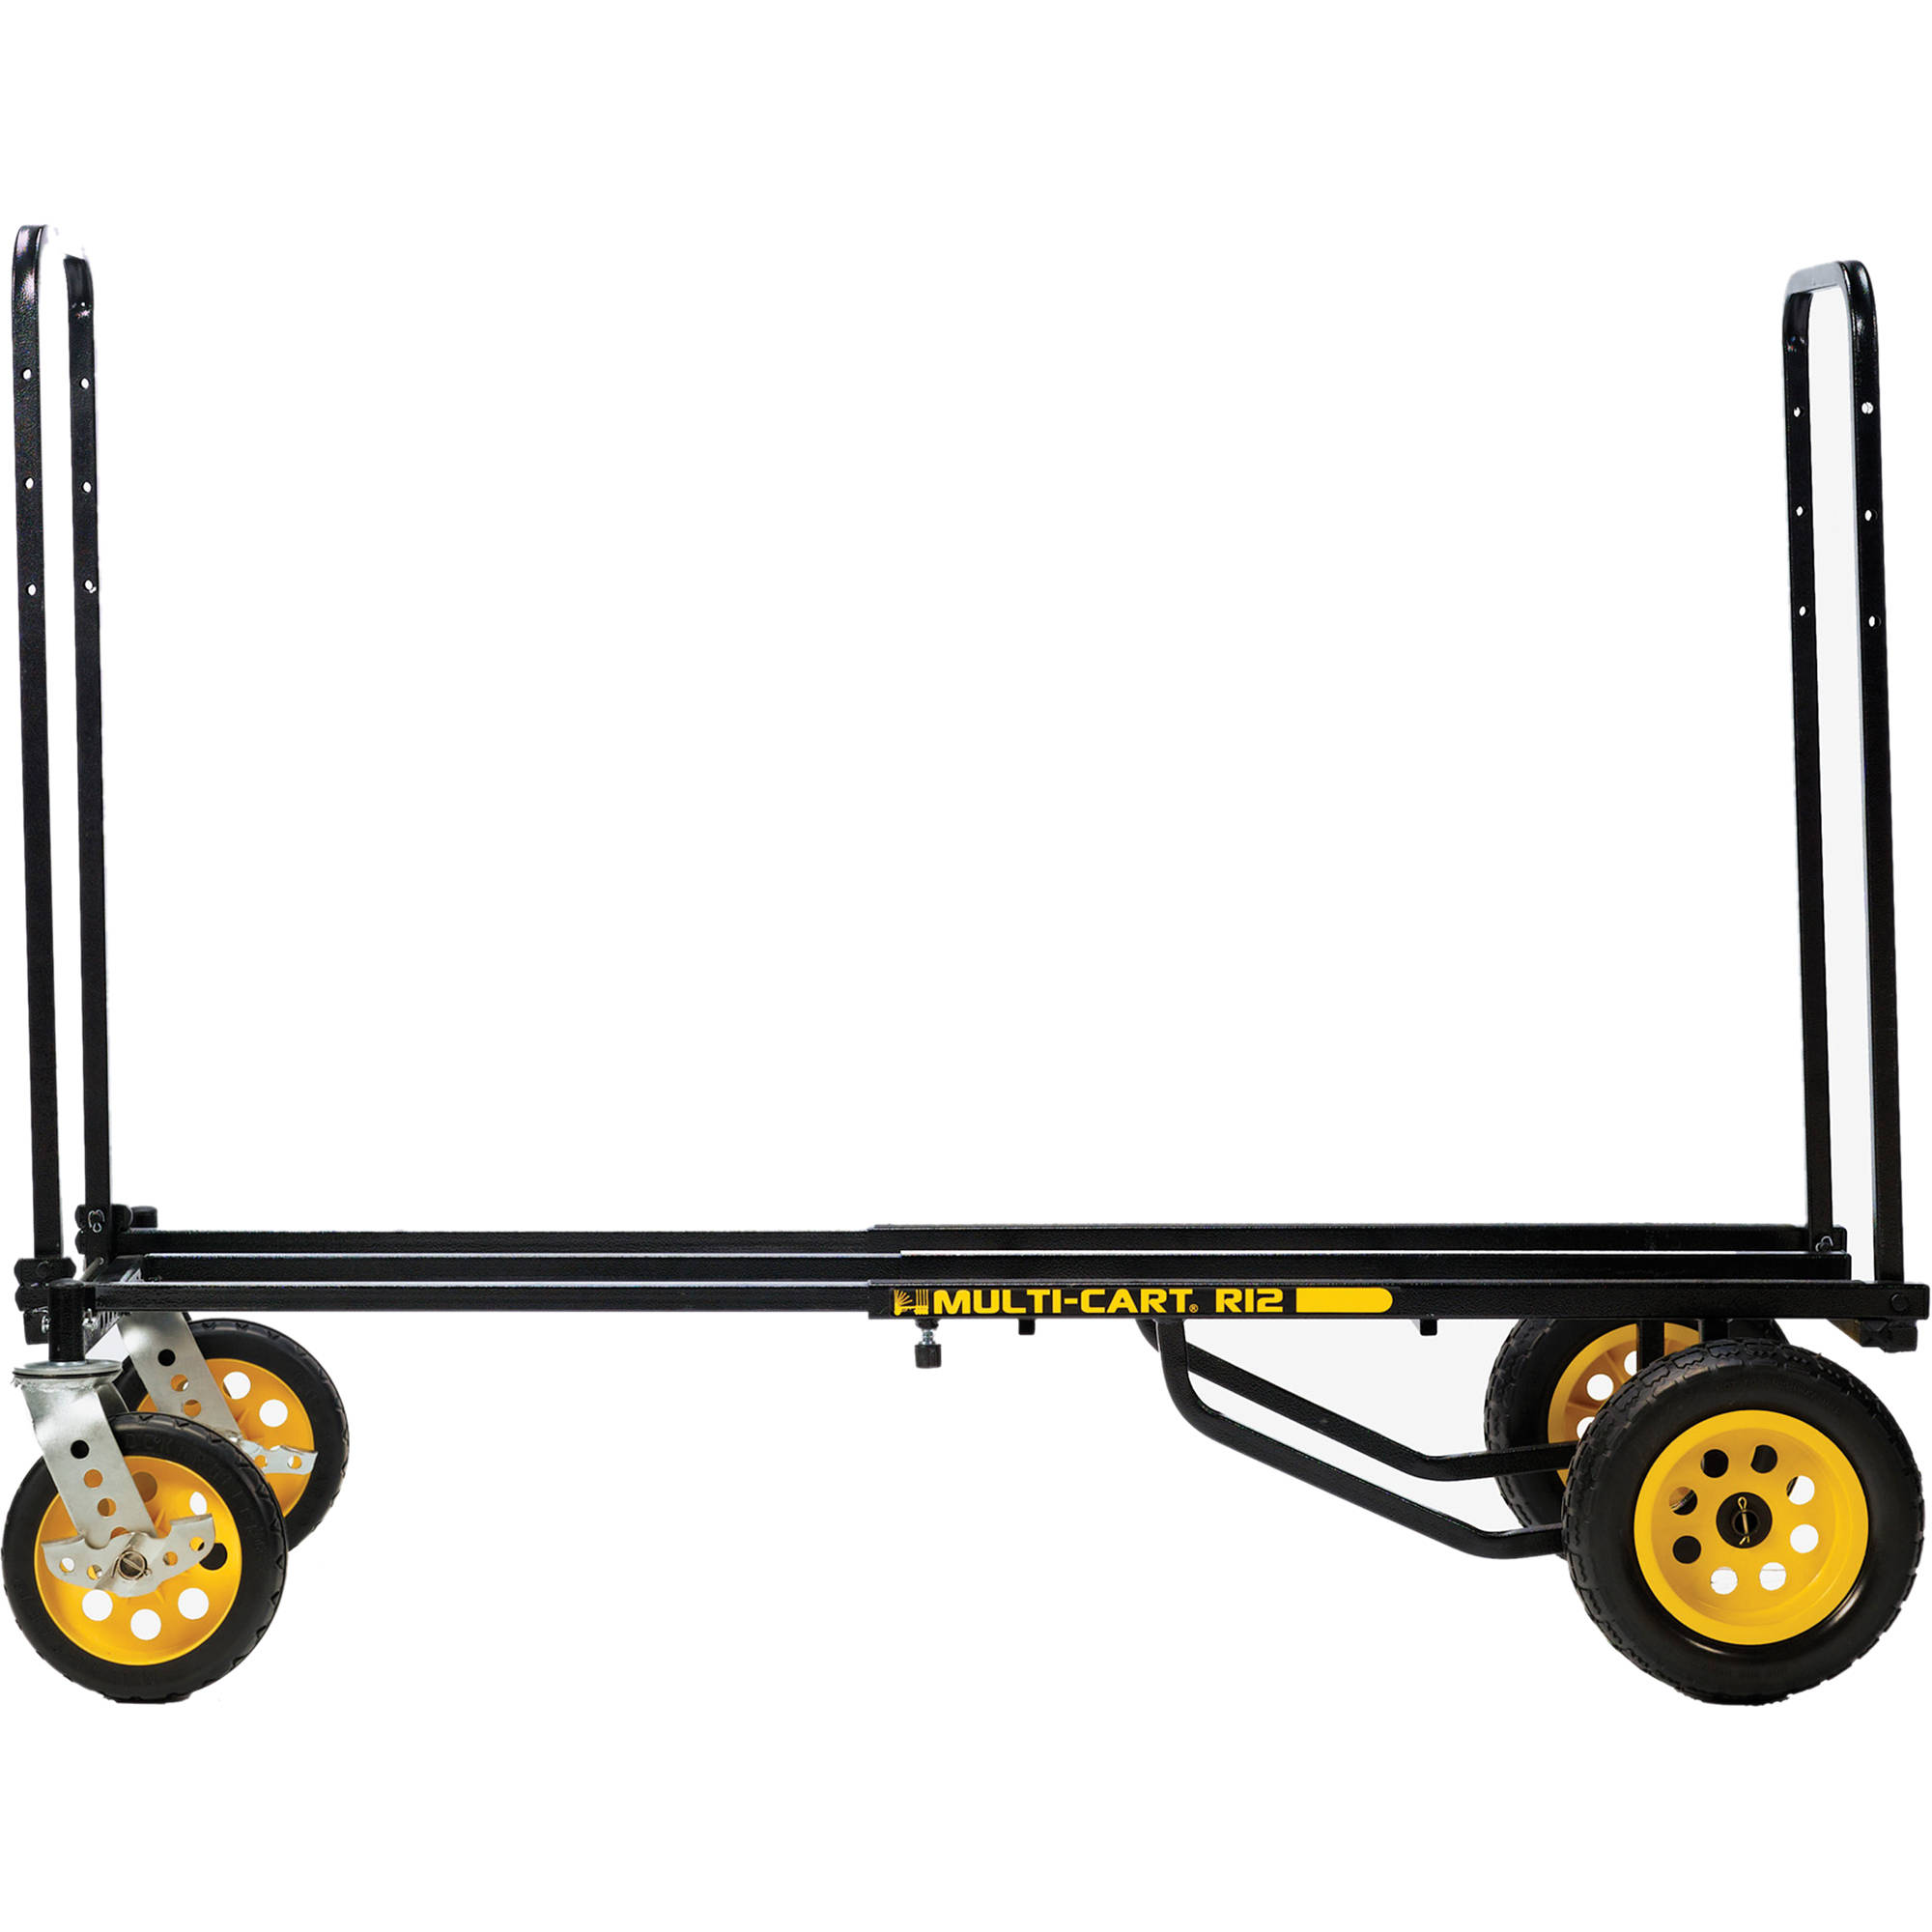 Multicart Rocknroller R12rt 8 In 1 All Terrain Equipment R12rt